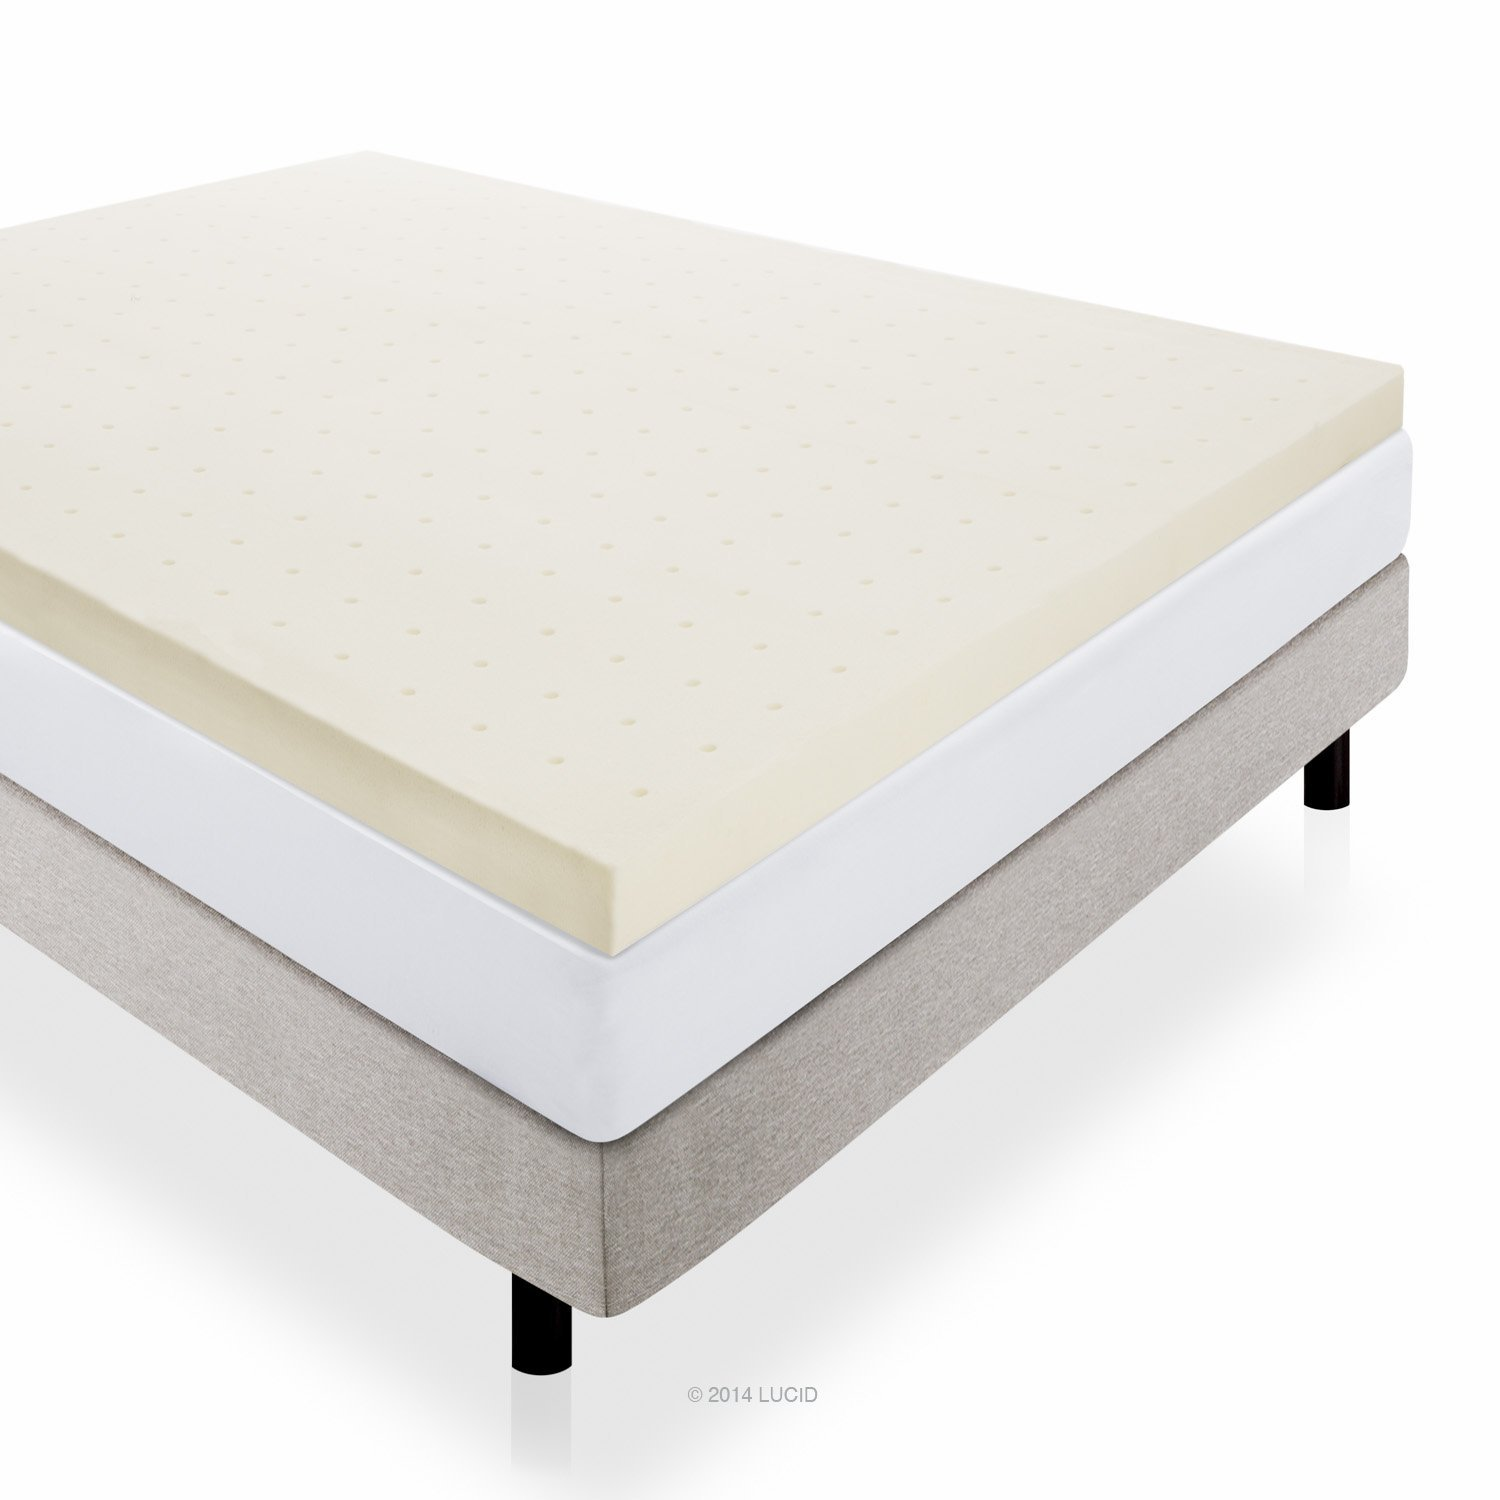 buy lucid 4 inch memory foam mattress topper 3-year warranty - queen